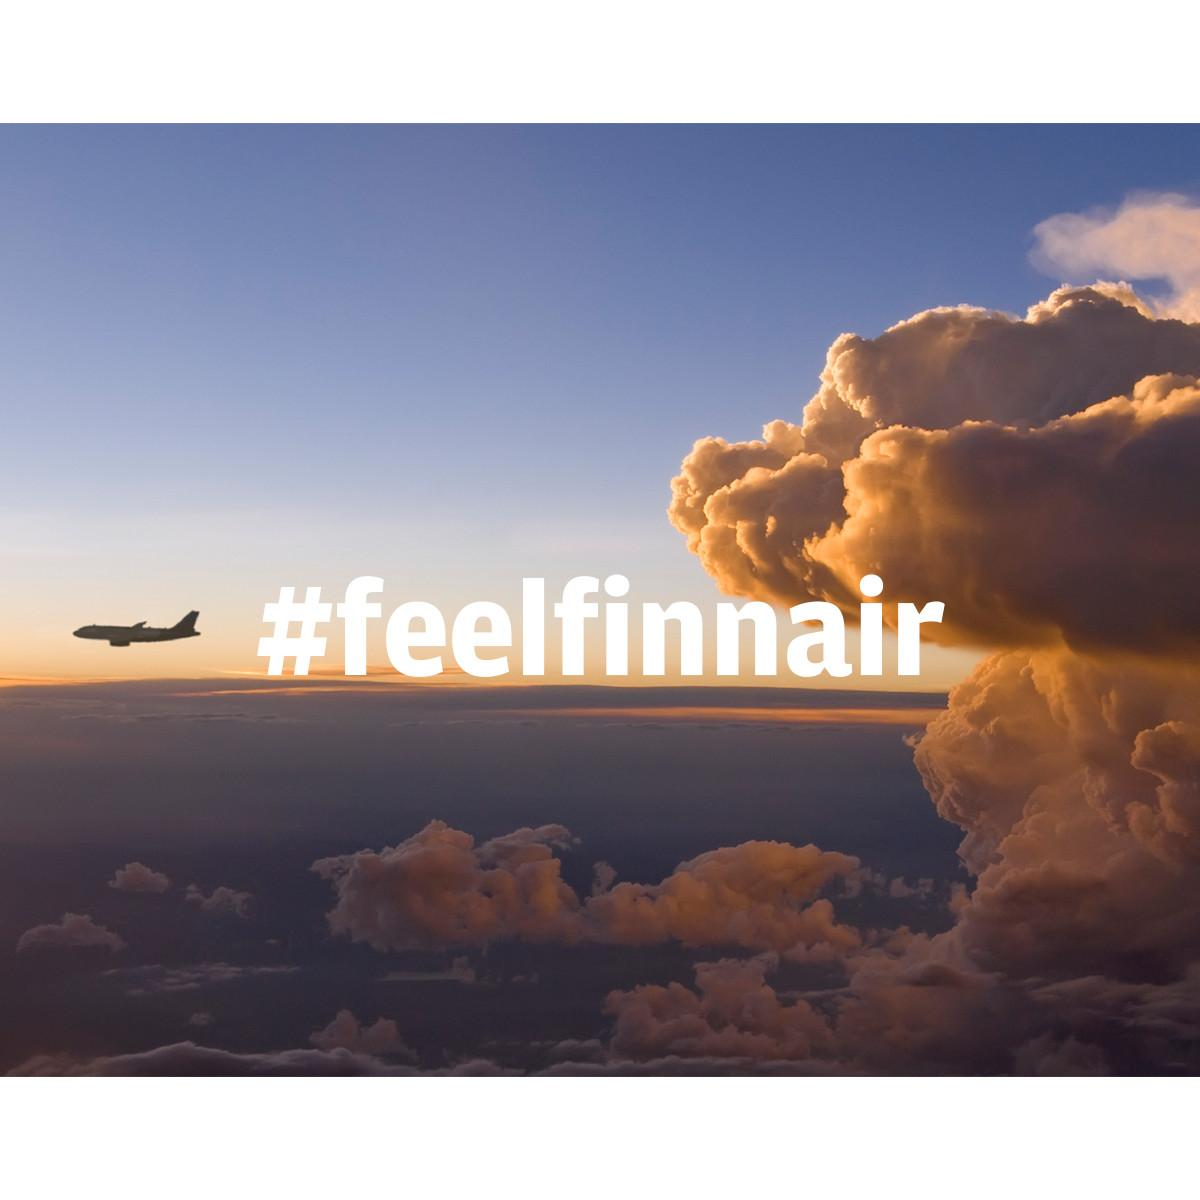 Share your feelfinnair moment on Instagram and you could win 5000 Finnair Plus points!